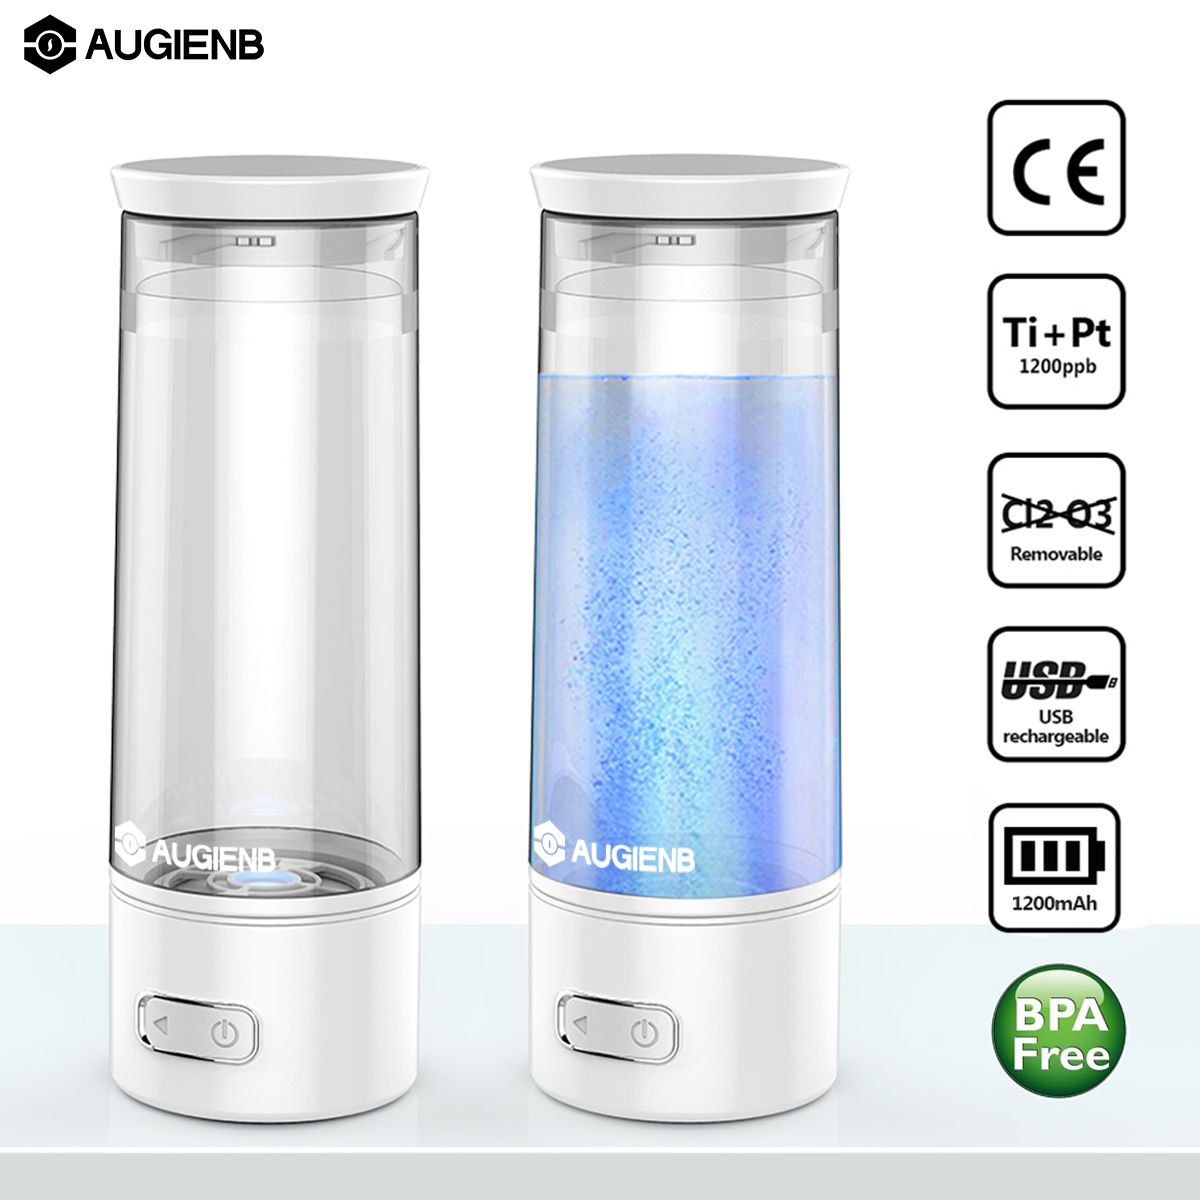 Augienb USB Rechargeable Anti Aging Portable Hydrogen Rich Water Bottle Ionizer Healthy Electrolyte Negative Ion Generator new arrival hydrogen generator hydrogen rich water machine hydrogen generating maker water filters ionizer 2 0l 100 240v 5w hot